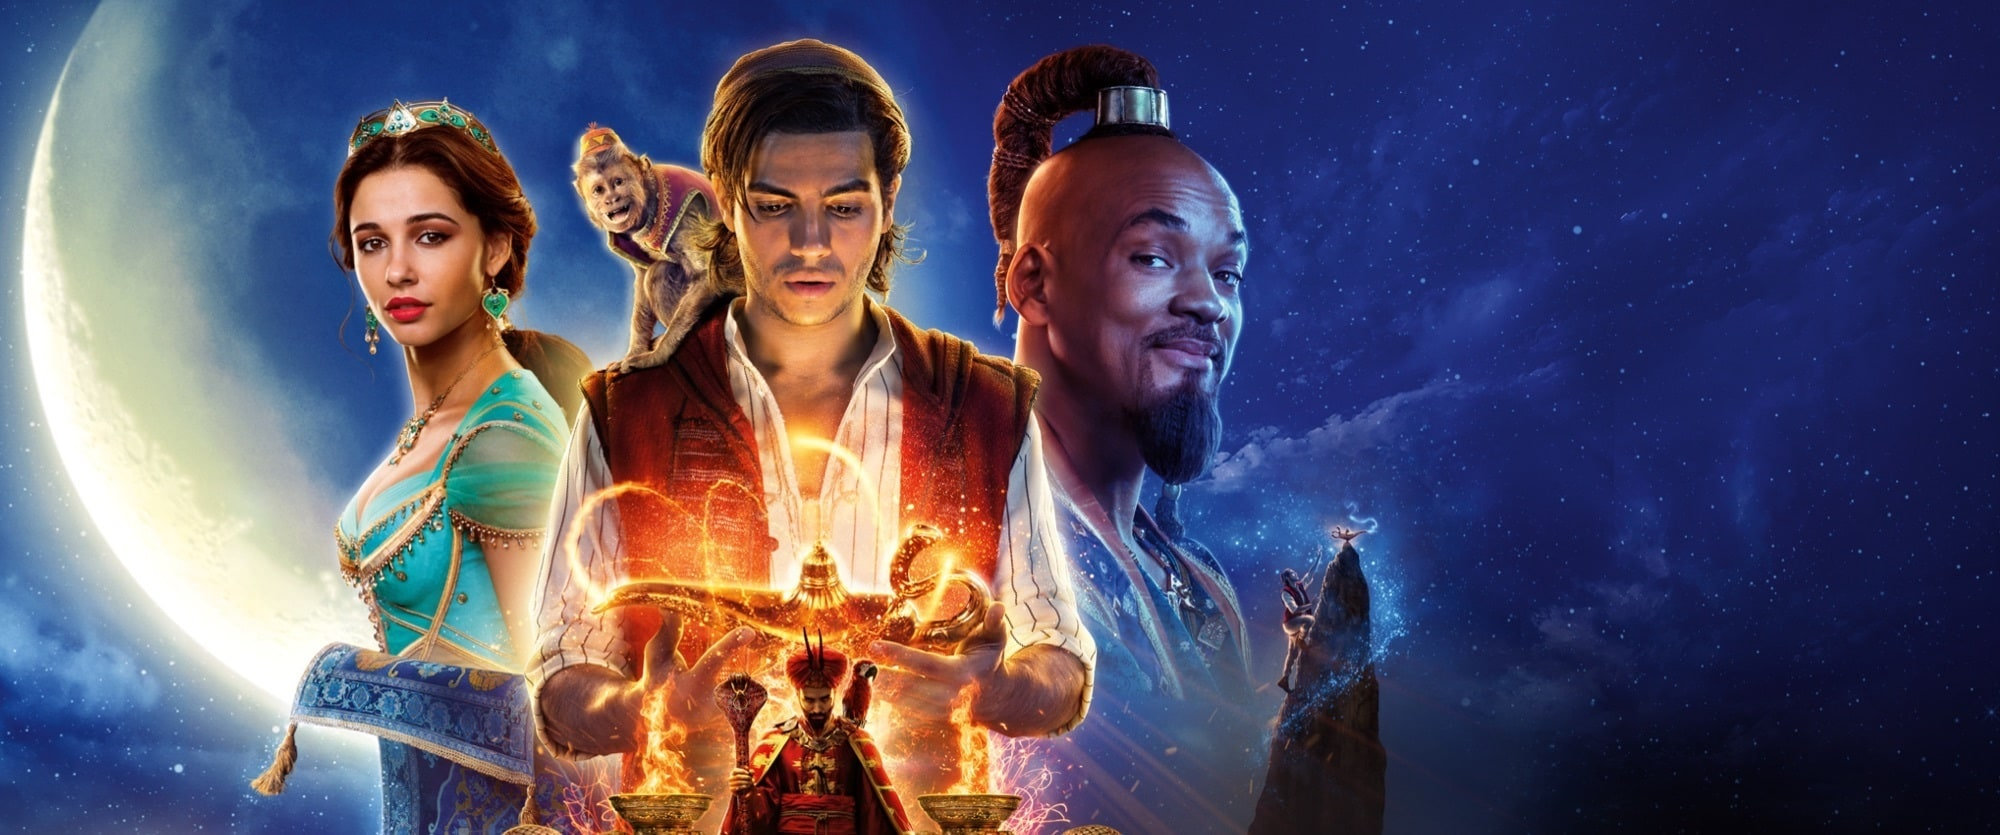 Aladdin 2019 Digital Download Disney